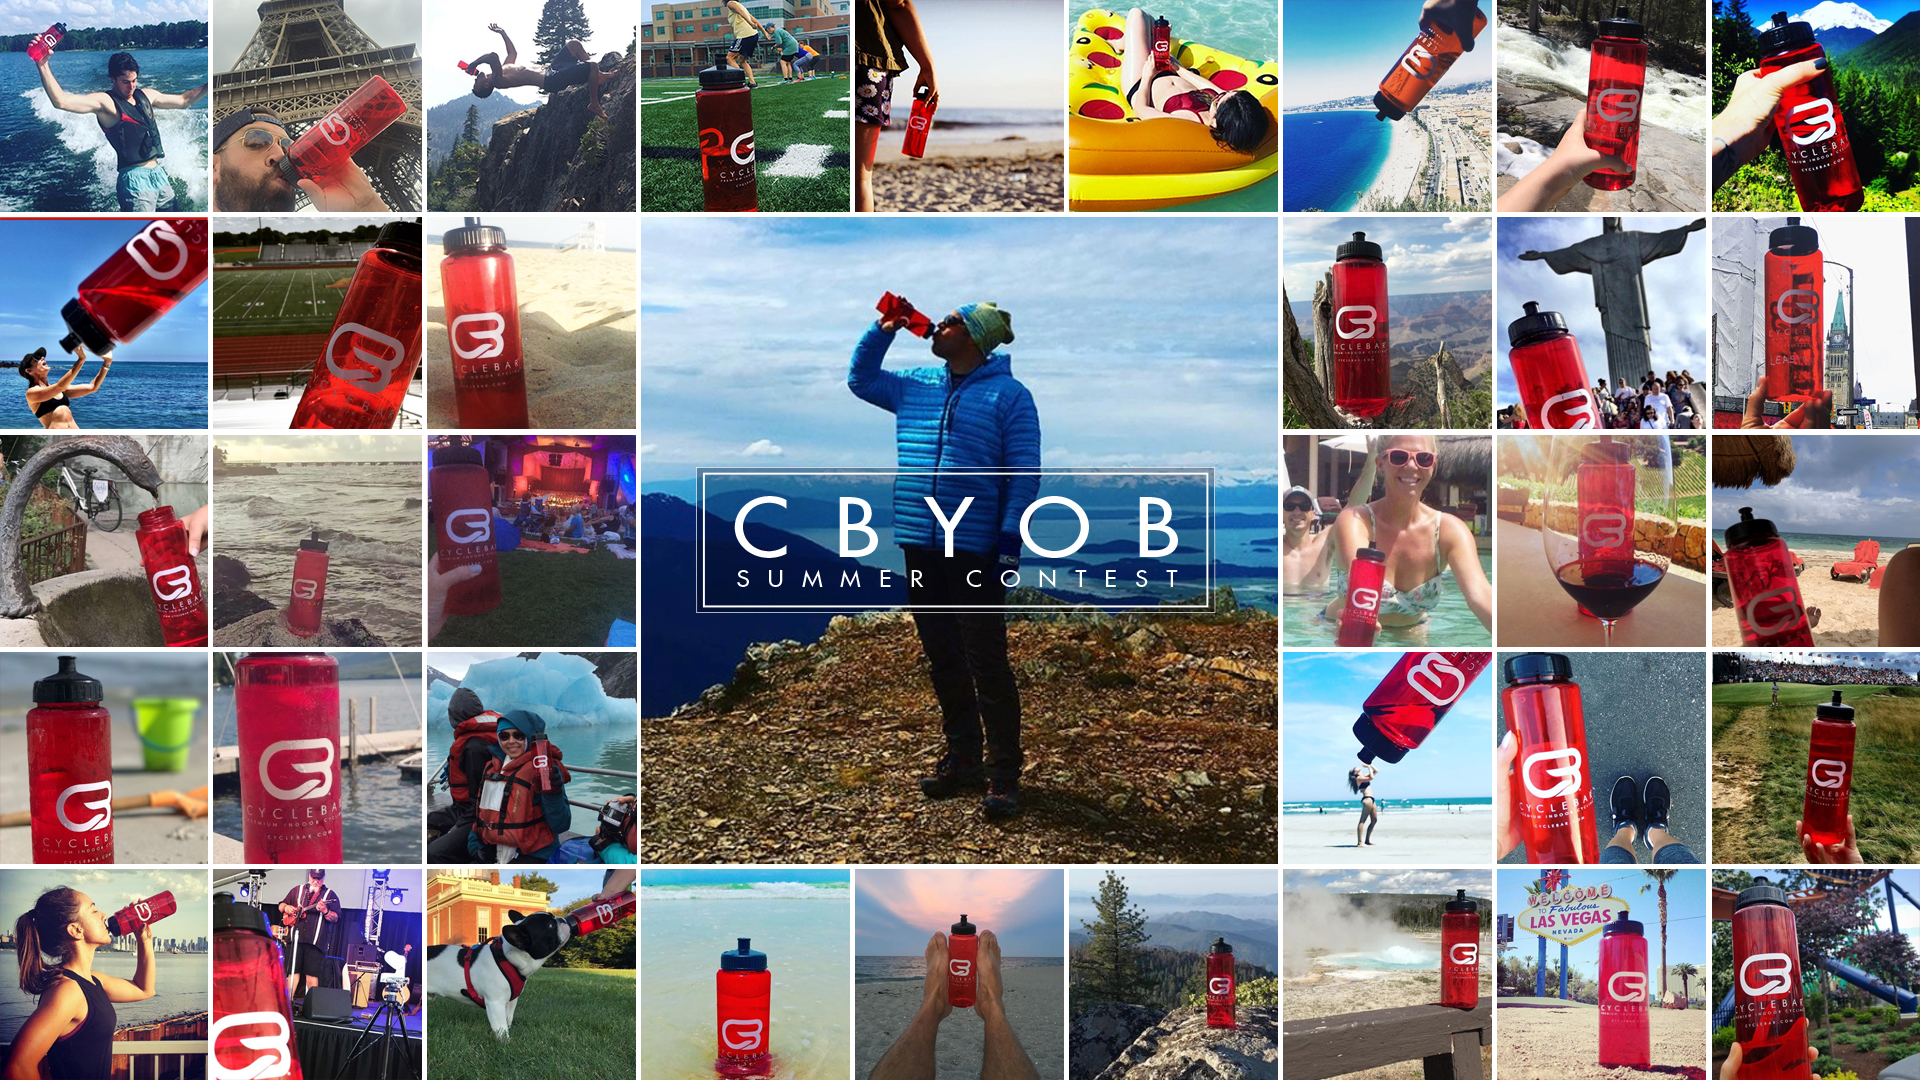 CBYOB CYCLEBAR SUMMER INSTAGRAM CONTEST